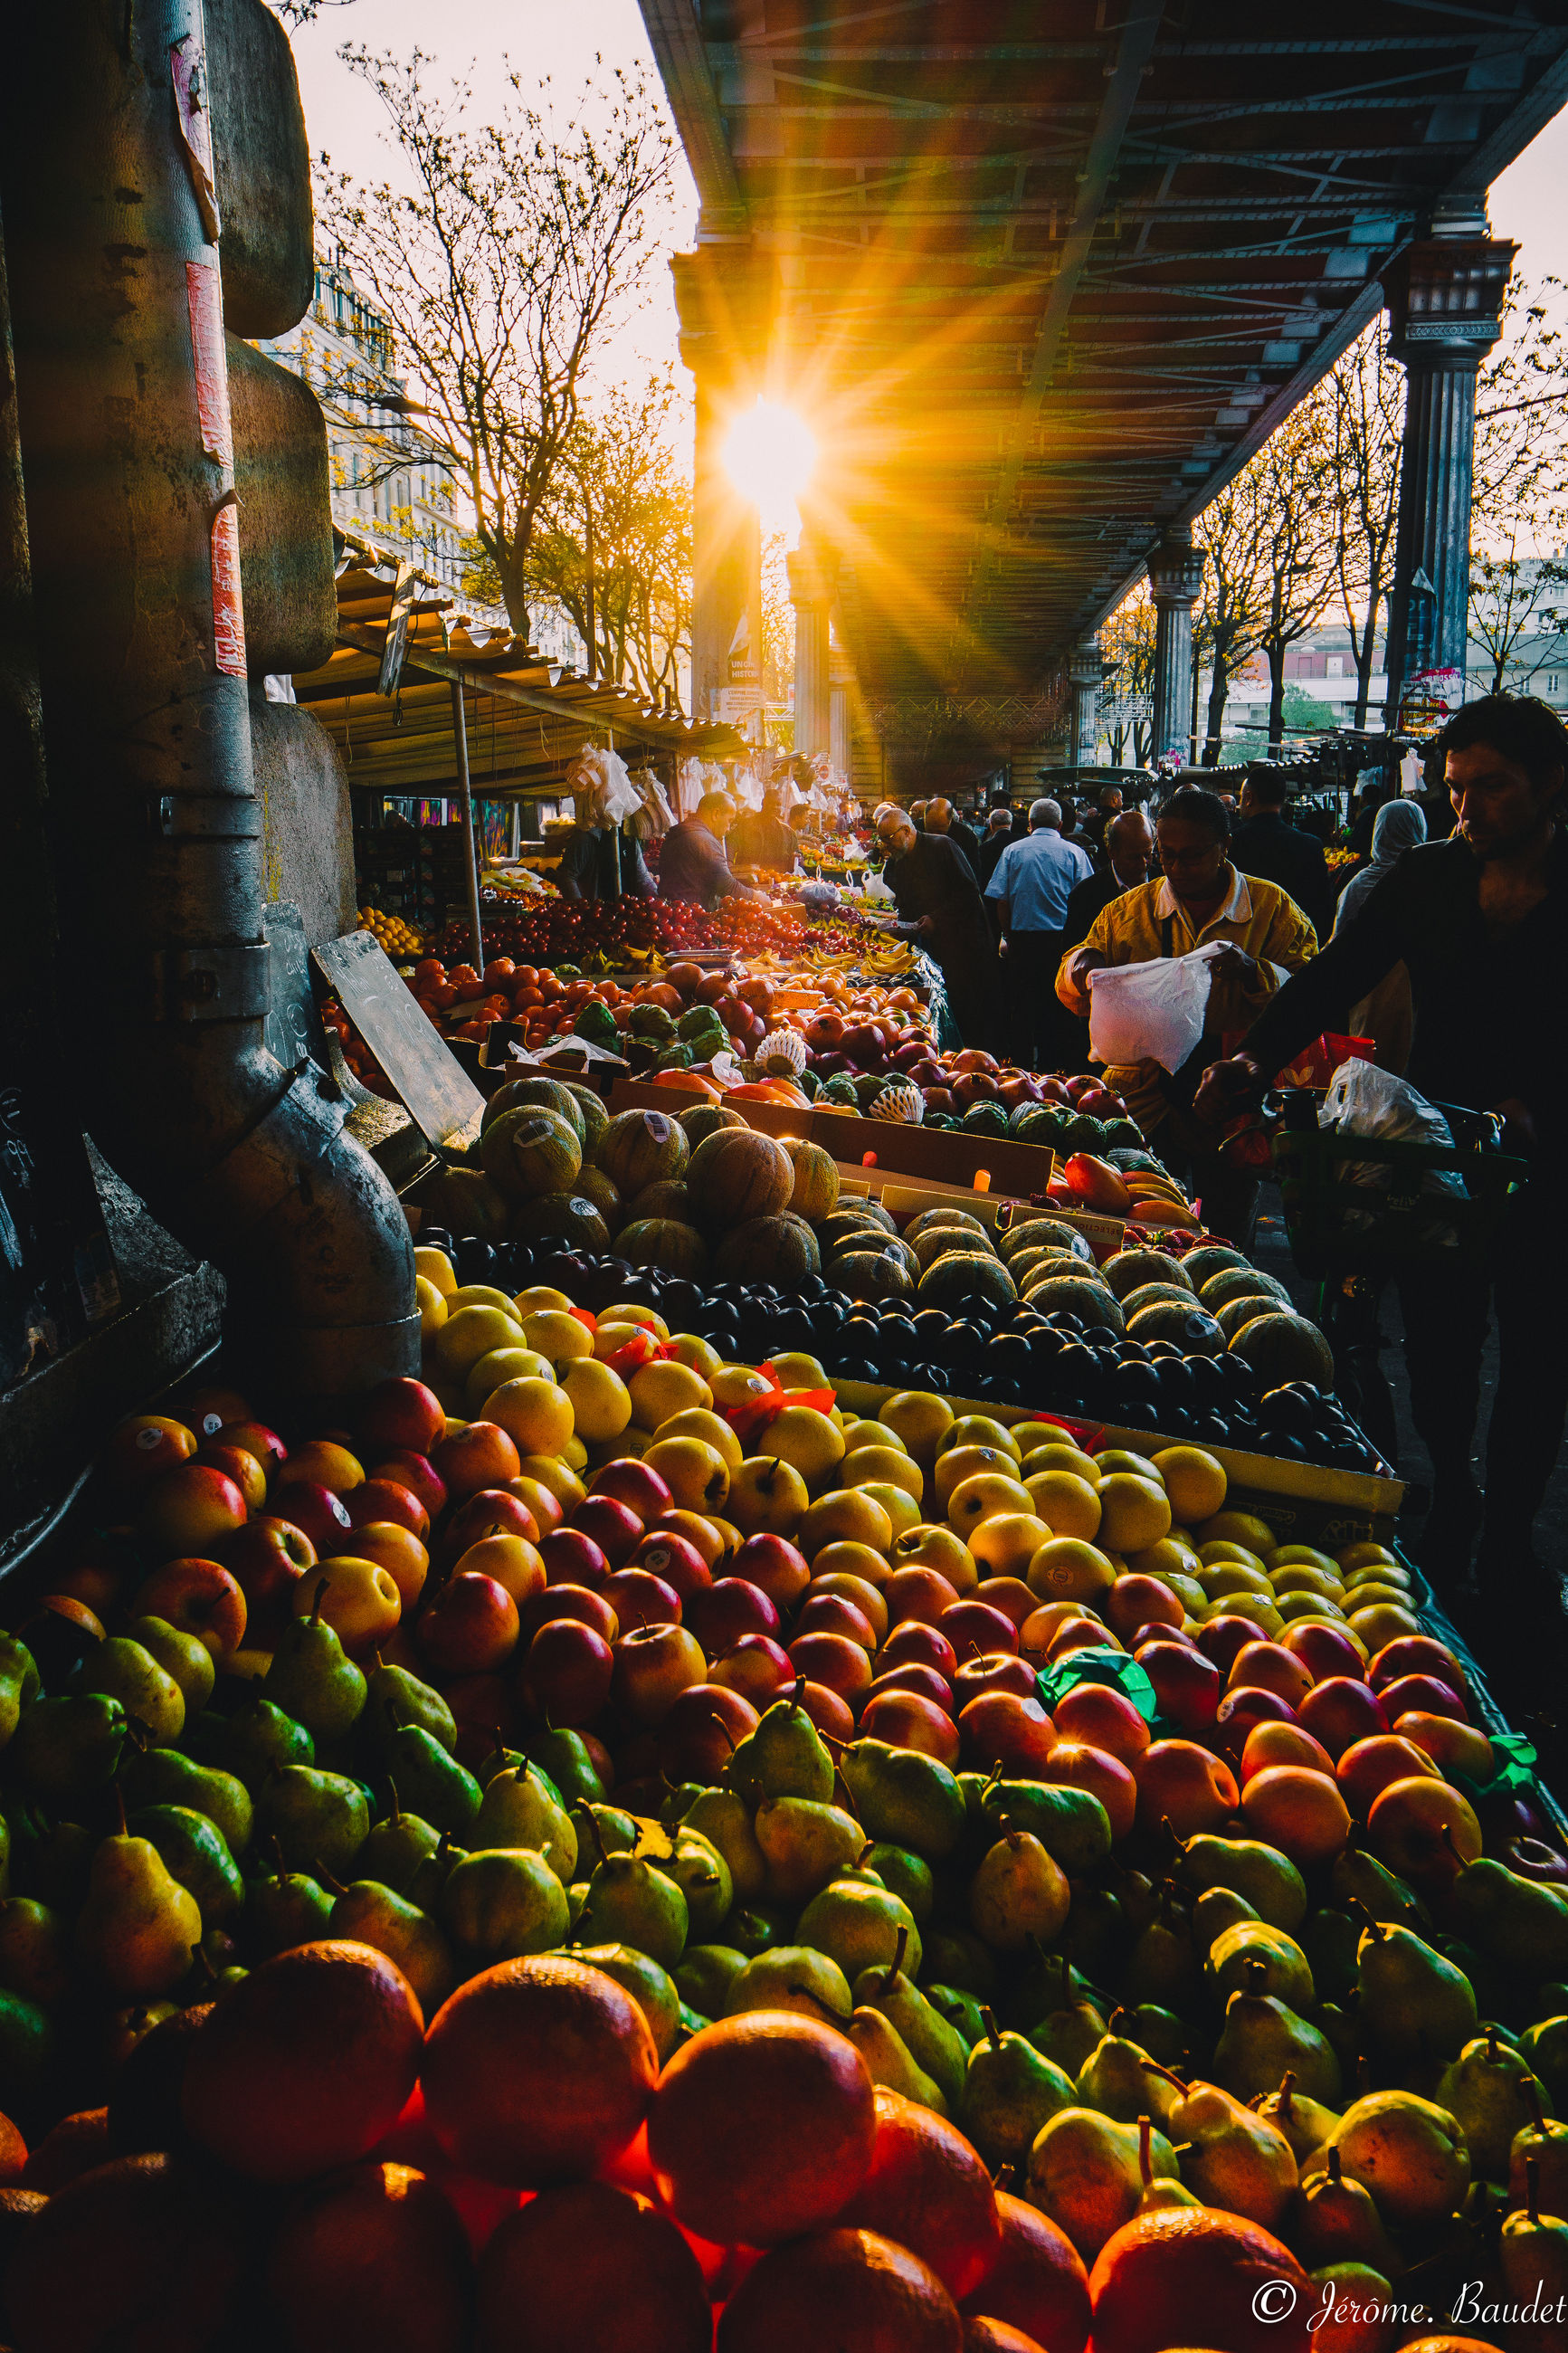 group of people, food, food and drink, real people, large group of people, healthy eating, architecture, crowd, market, retail, market stall, built structure, choice, fruit, men, illuminated, city, for sale, women, lifestyles, lens flare